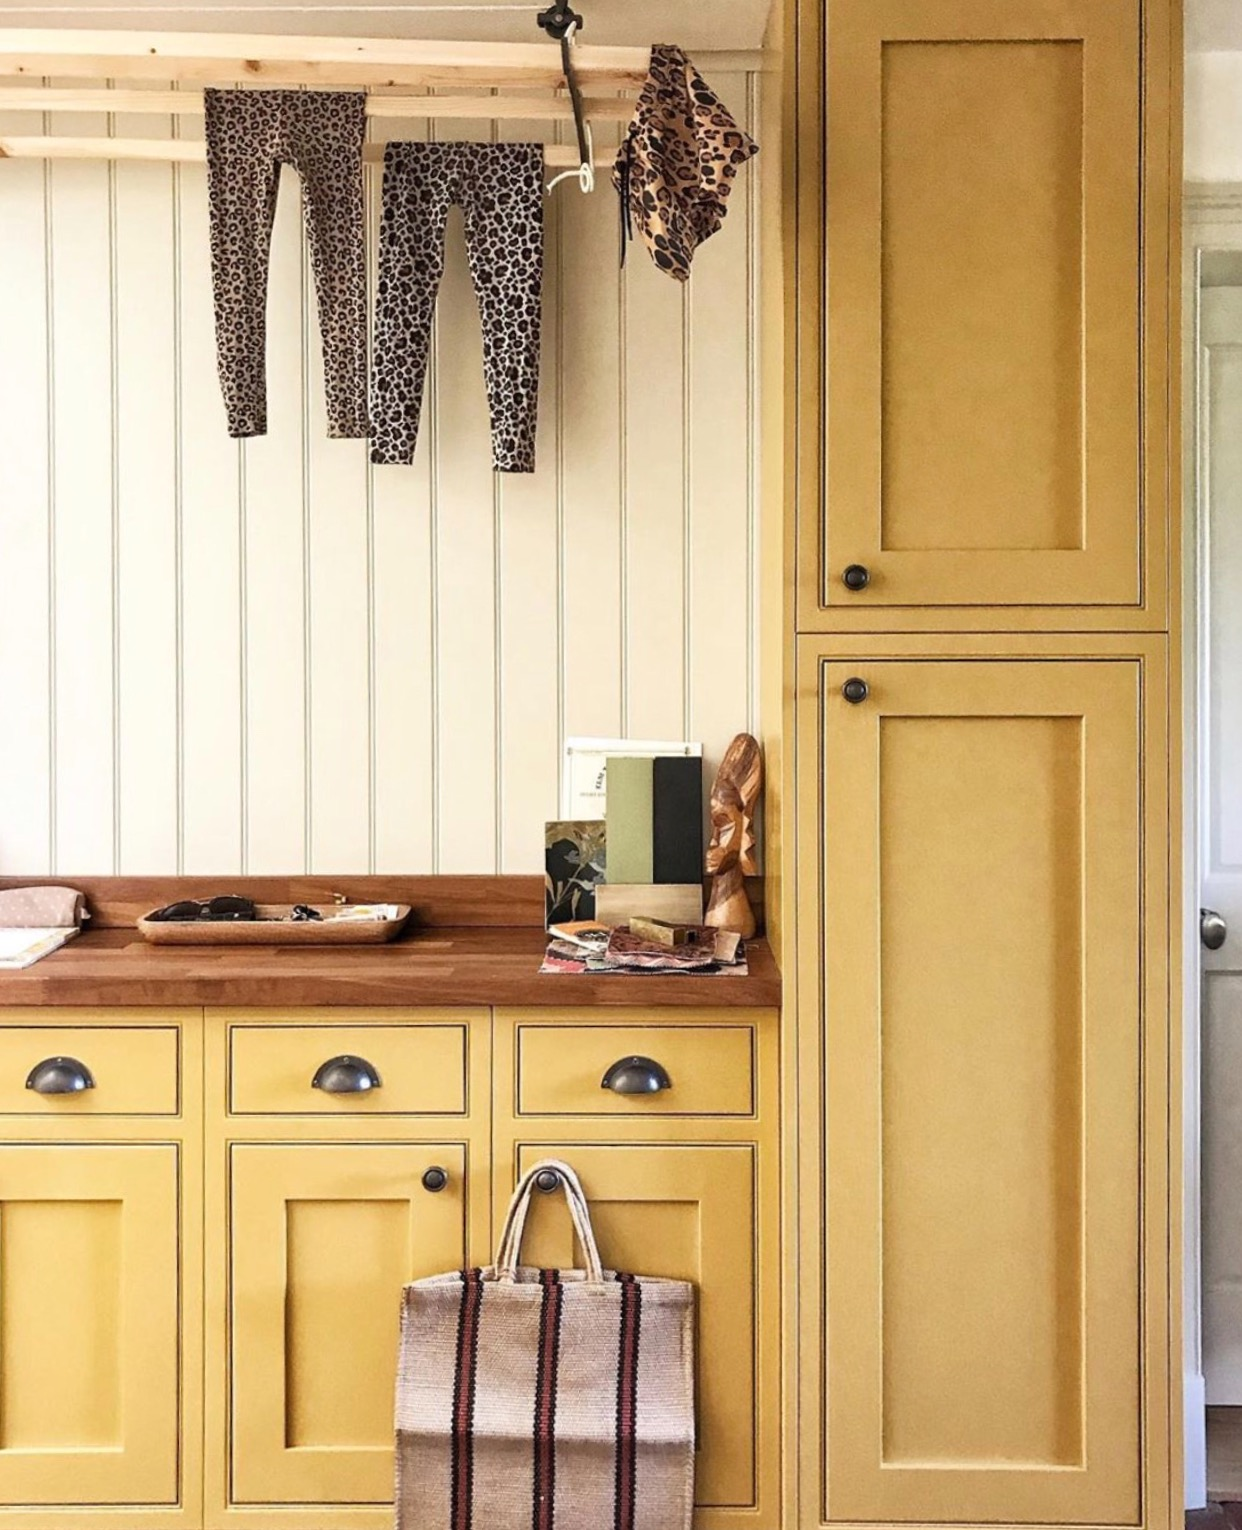 yellow kitchen with leopard laundry image by @ericadavies of @our_essex_house_renovation